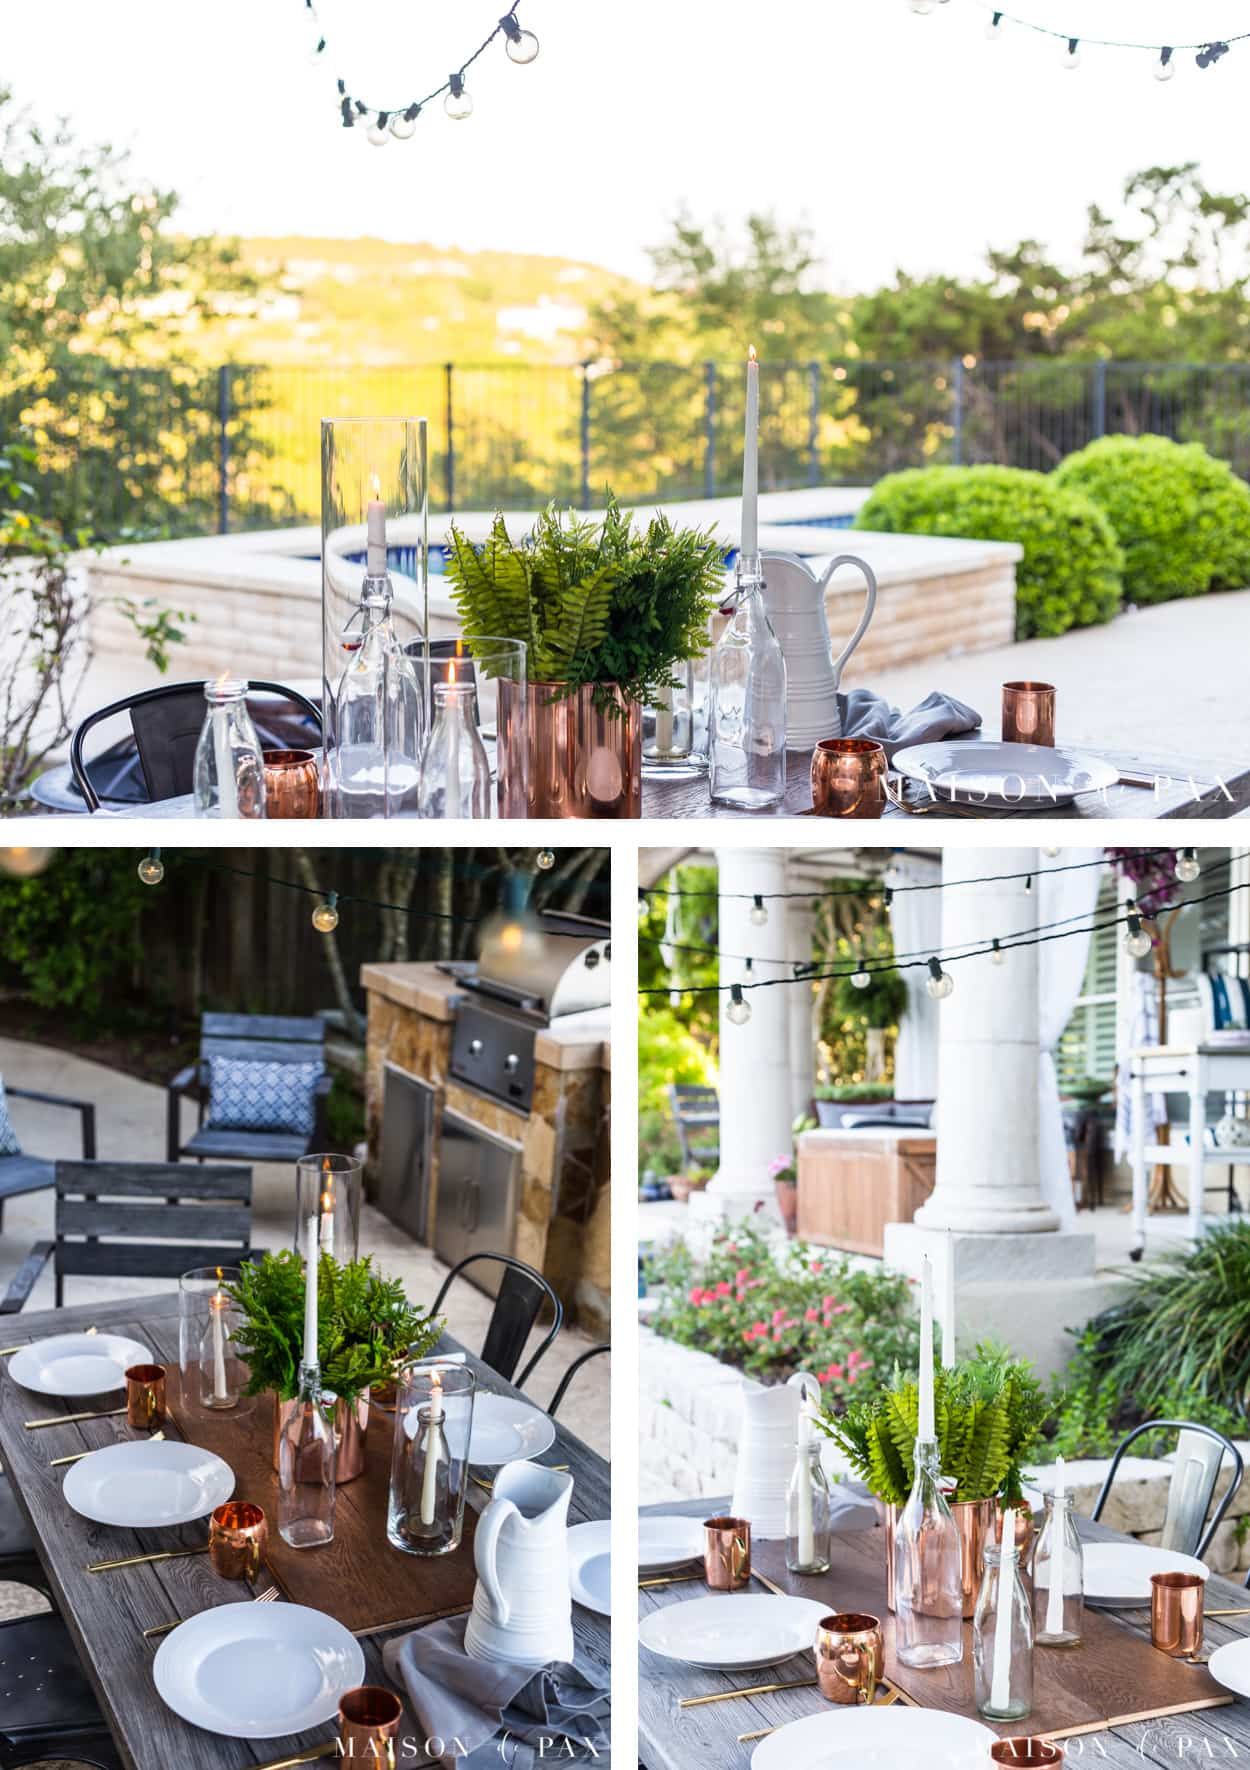 String lights and candles bring all the ambiance to outdoor dining! Get more ideas for making outdoor dining memorable. #outdoordining #outdoorentertaining #summerentertaining #stringlights